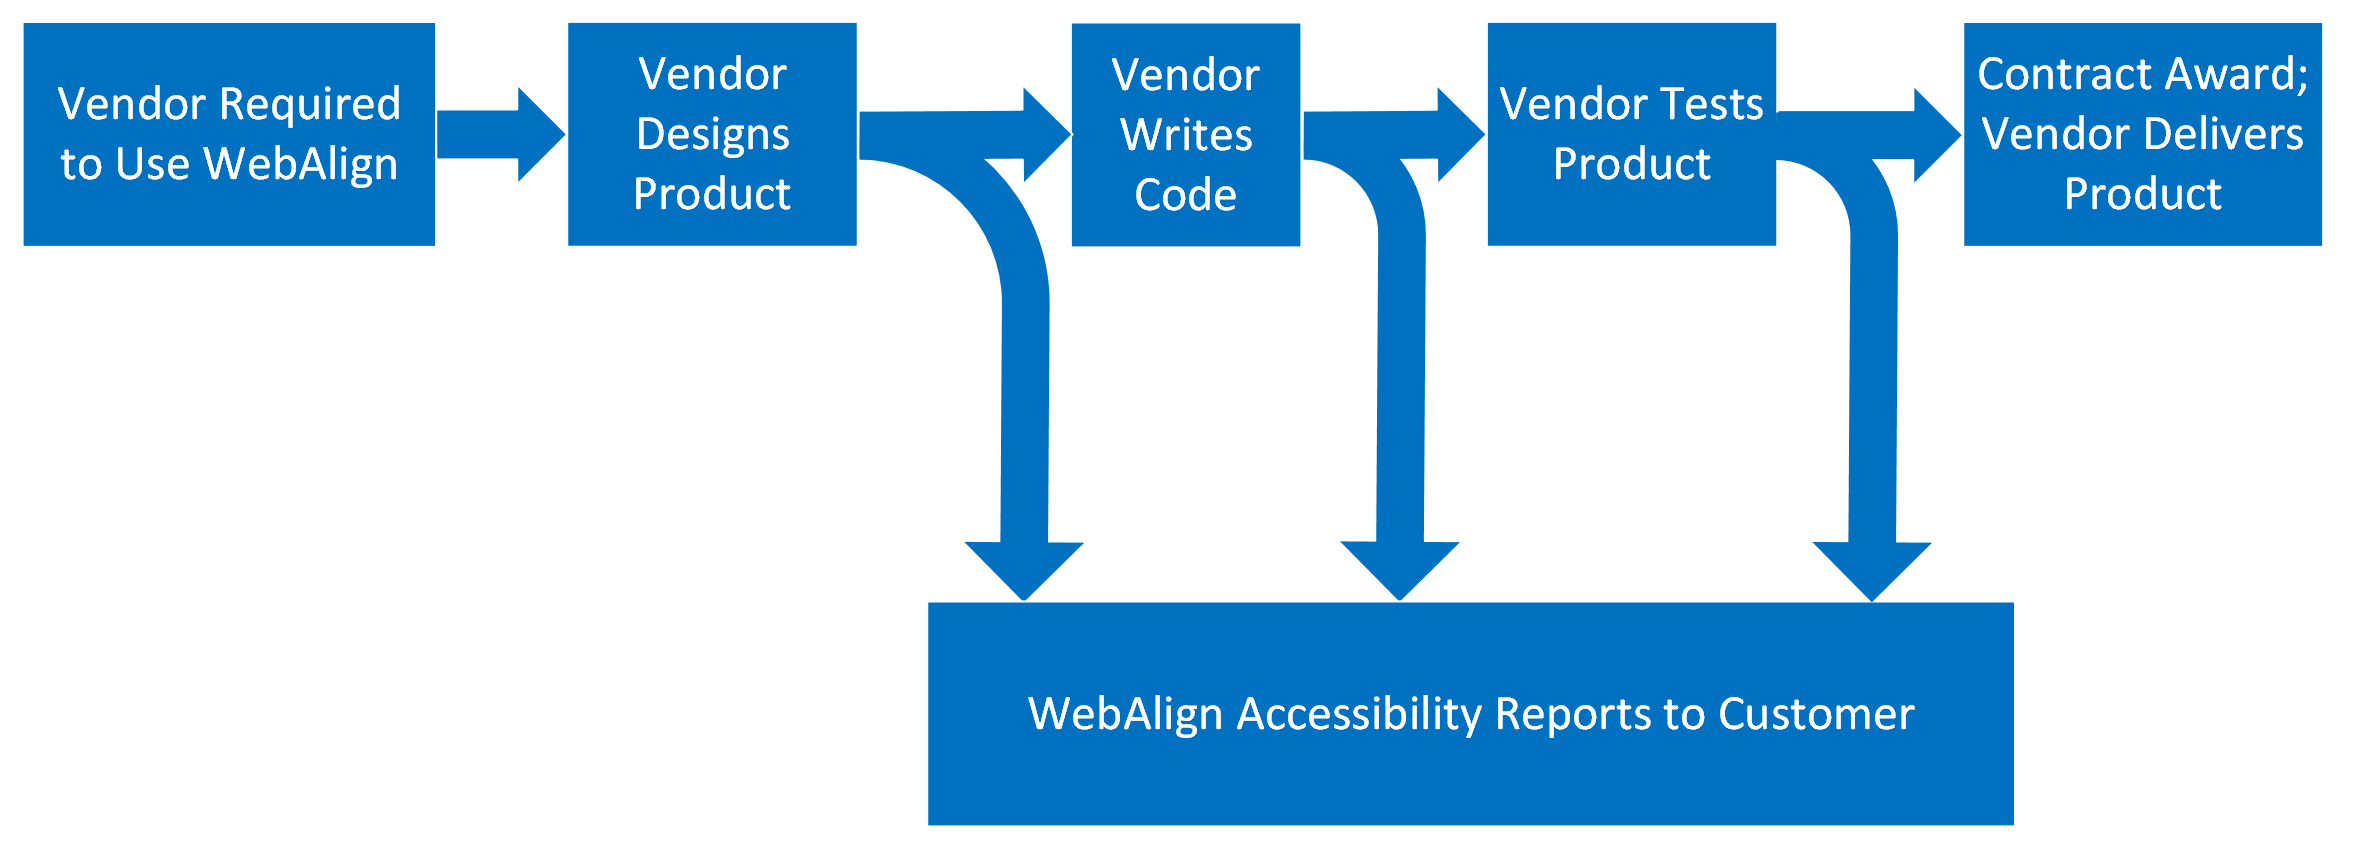 Process flow demonstrating how WebAlign makes achieving accessibility quicker. The vendor is required to use WebAlign. Vendor Designs product using WebAlign. Once design has addressed the core concepts in WebAlign, the Vendor can write the code using WebAlign. Once code has been written using the core concepts in WebAlign, the Vendor then test the product using WebAlign. Because of WebAlign, product incorporates accessibility quicker, vendor is awarded contract and delivers an accessible product. Throughout the whole process following WebAlign allows vendor to provide progress reports to customer during development lifecycle.